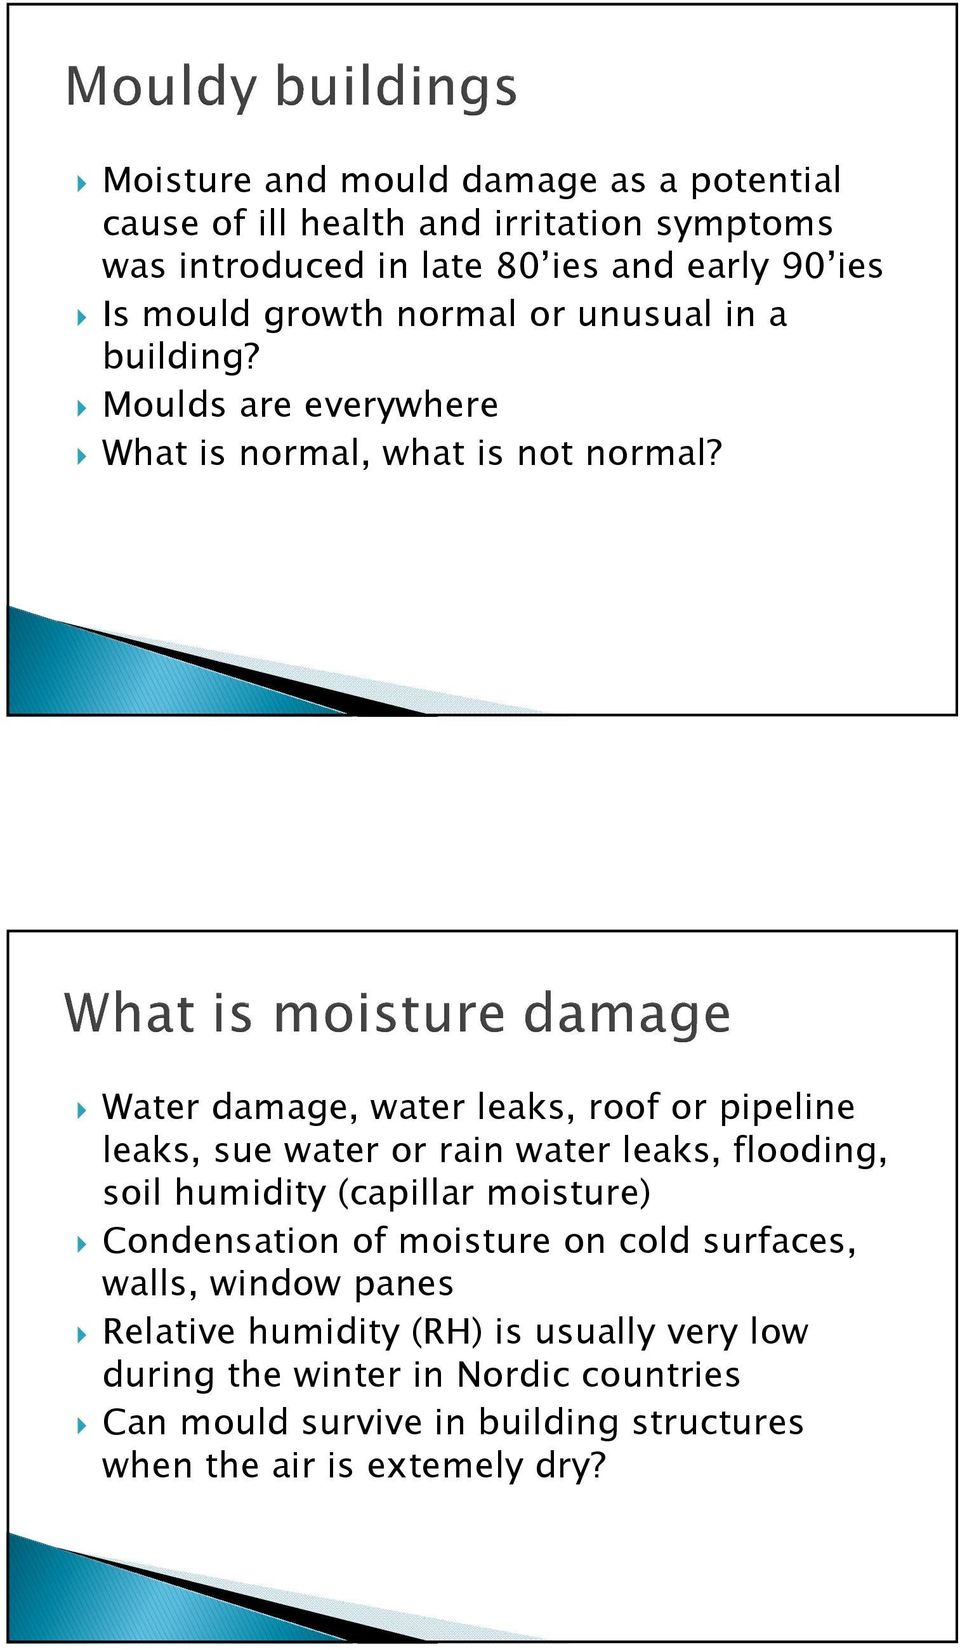 Water damage, water leaks, roof or pipeline leaks, sue water or rain water leaks, flooding, soil humidity (capillar moisture) Condensation of